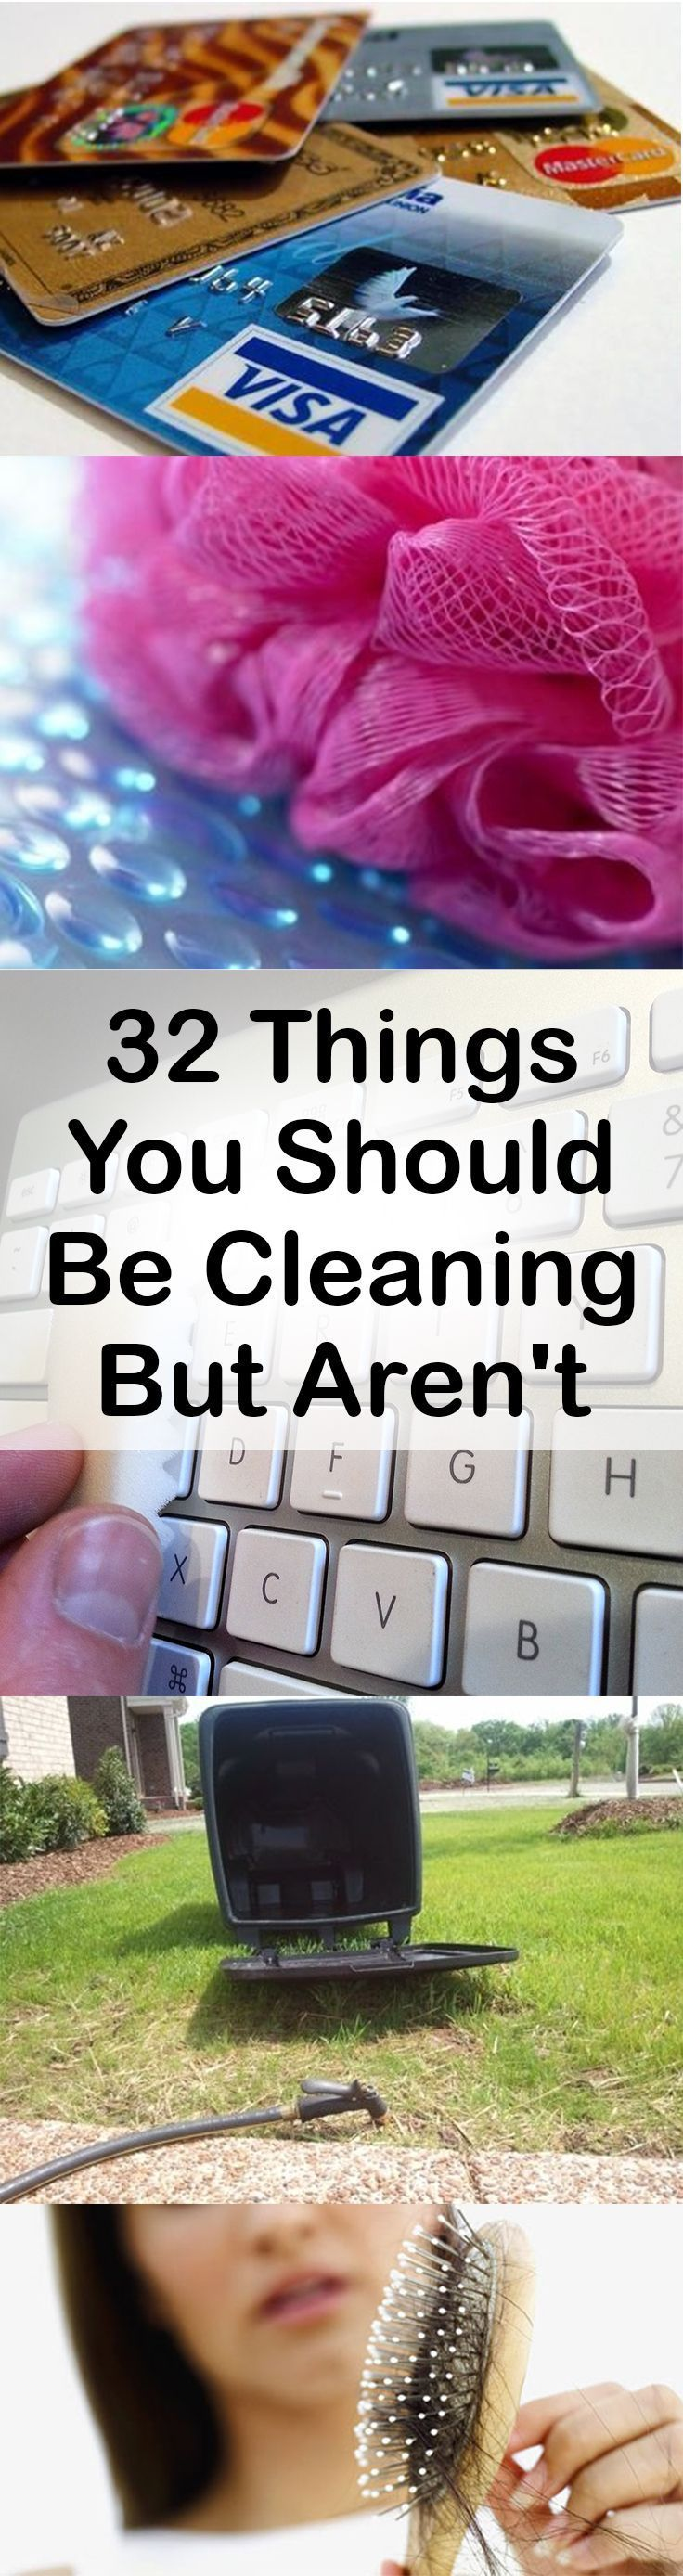 Cleaning, things to clean, cleaning hacks, popular pin, cleaning tips and tricks, cleaning ideas, DIY clean, DIY cleaning, easy cleaning ideas